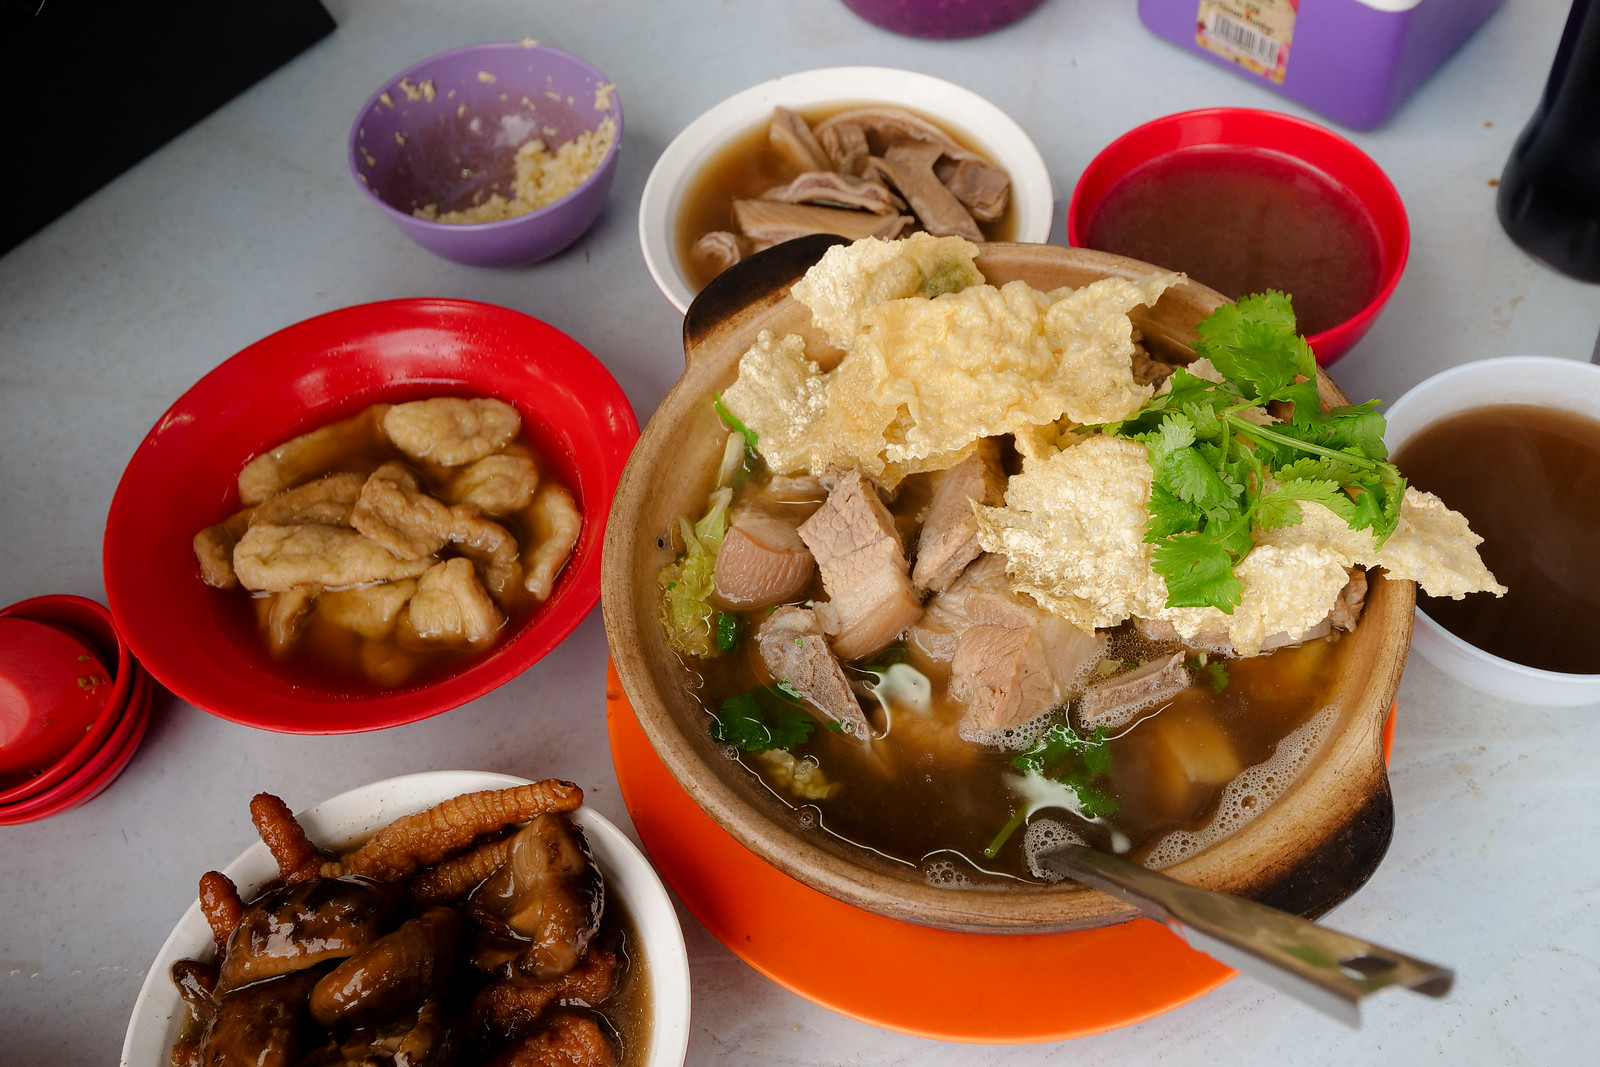 This is a healthy, traditional, herbal soup loved by Chinese-Malay throughout Malaysia and Singapore, and a great place to have it, is Yik See Ho Bak Kut Teh